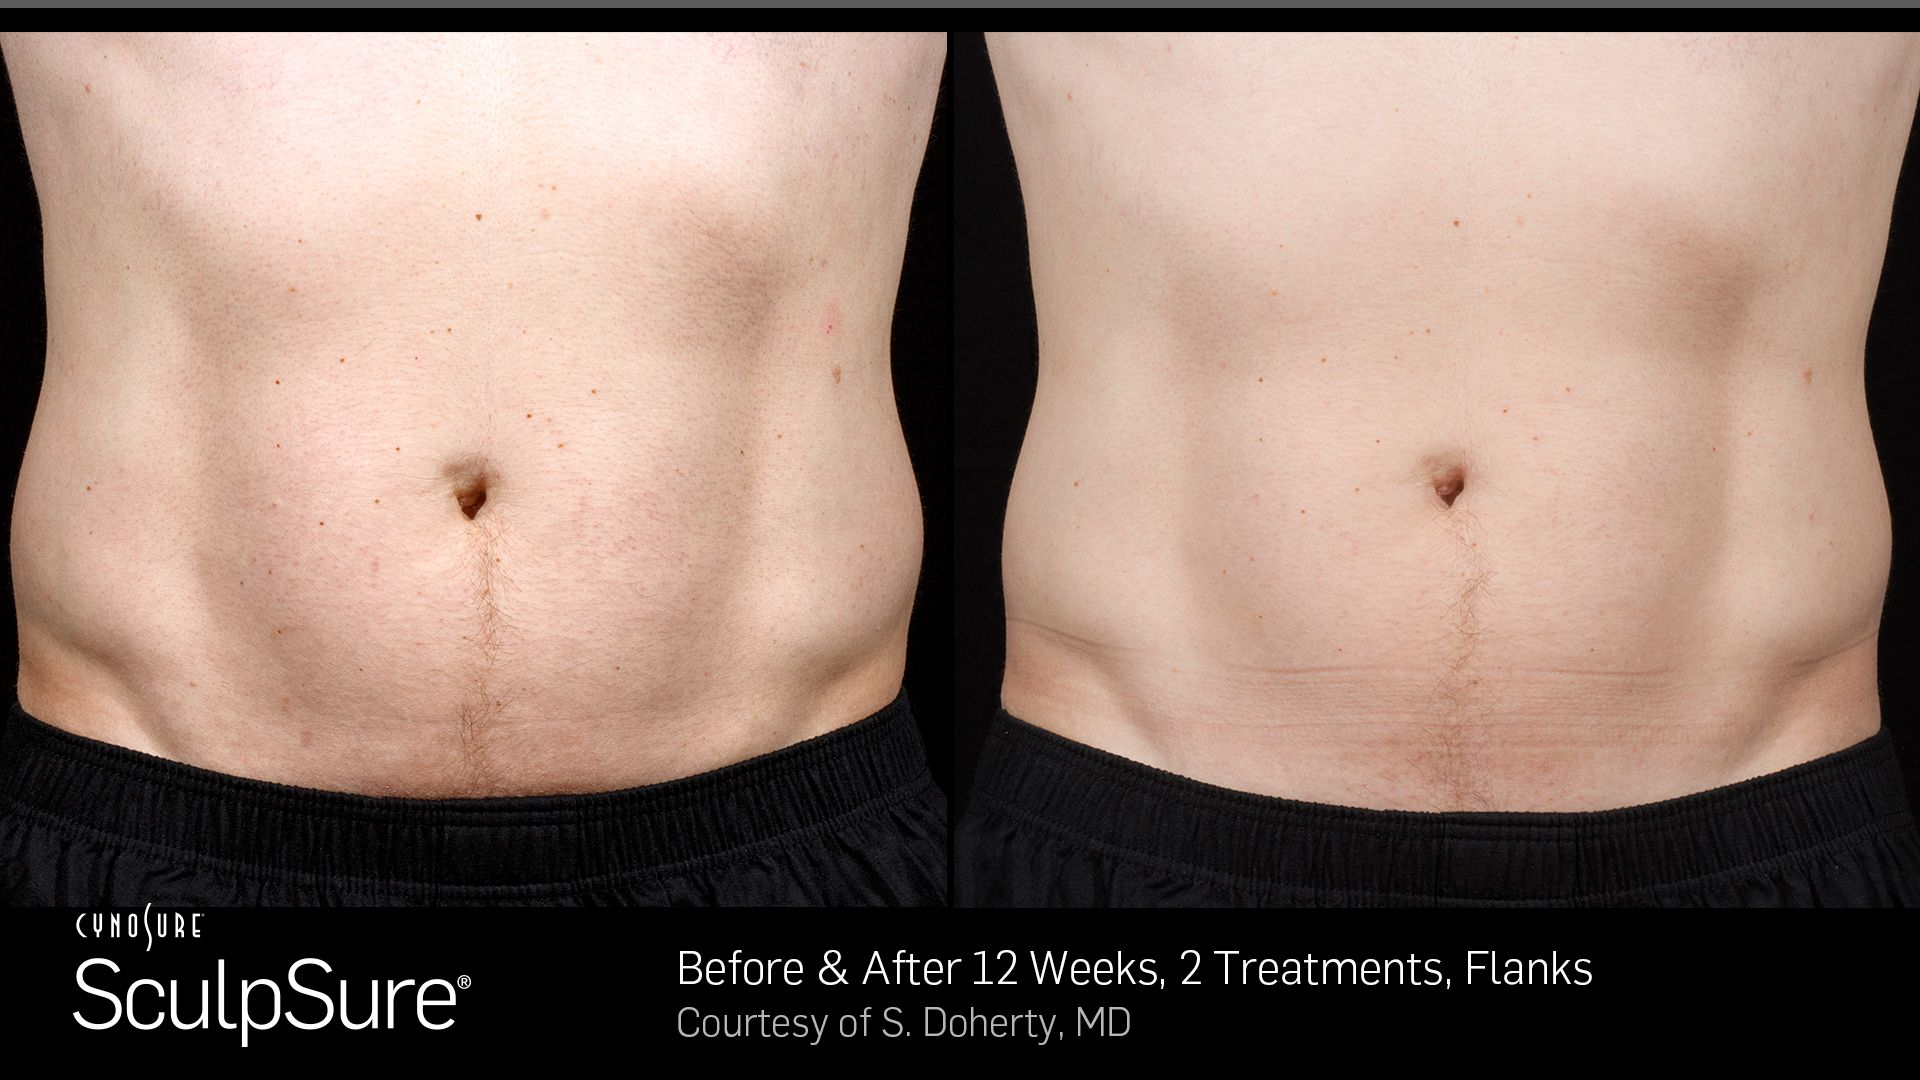 ba_sculpsure_s-doherty_core_2tx_12wks-03